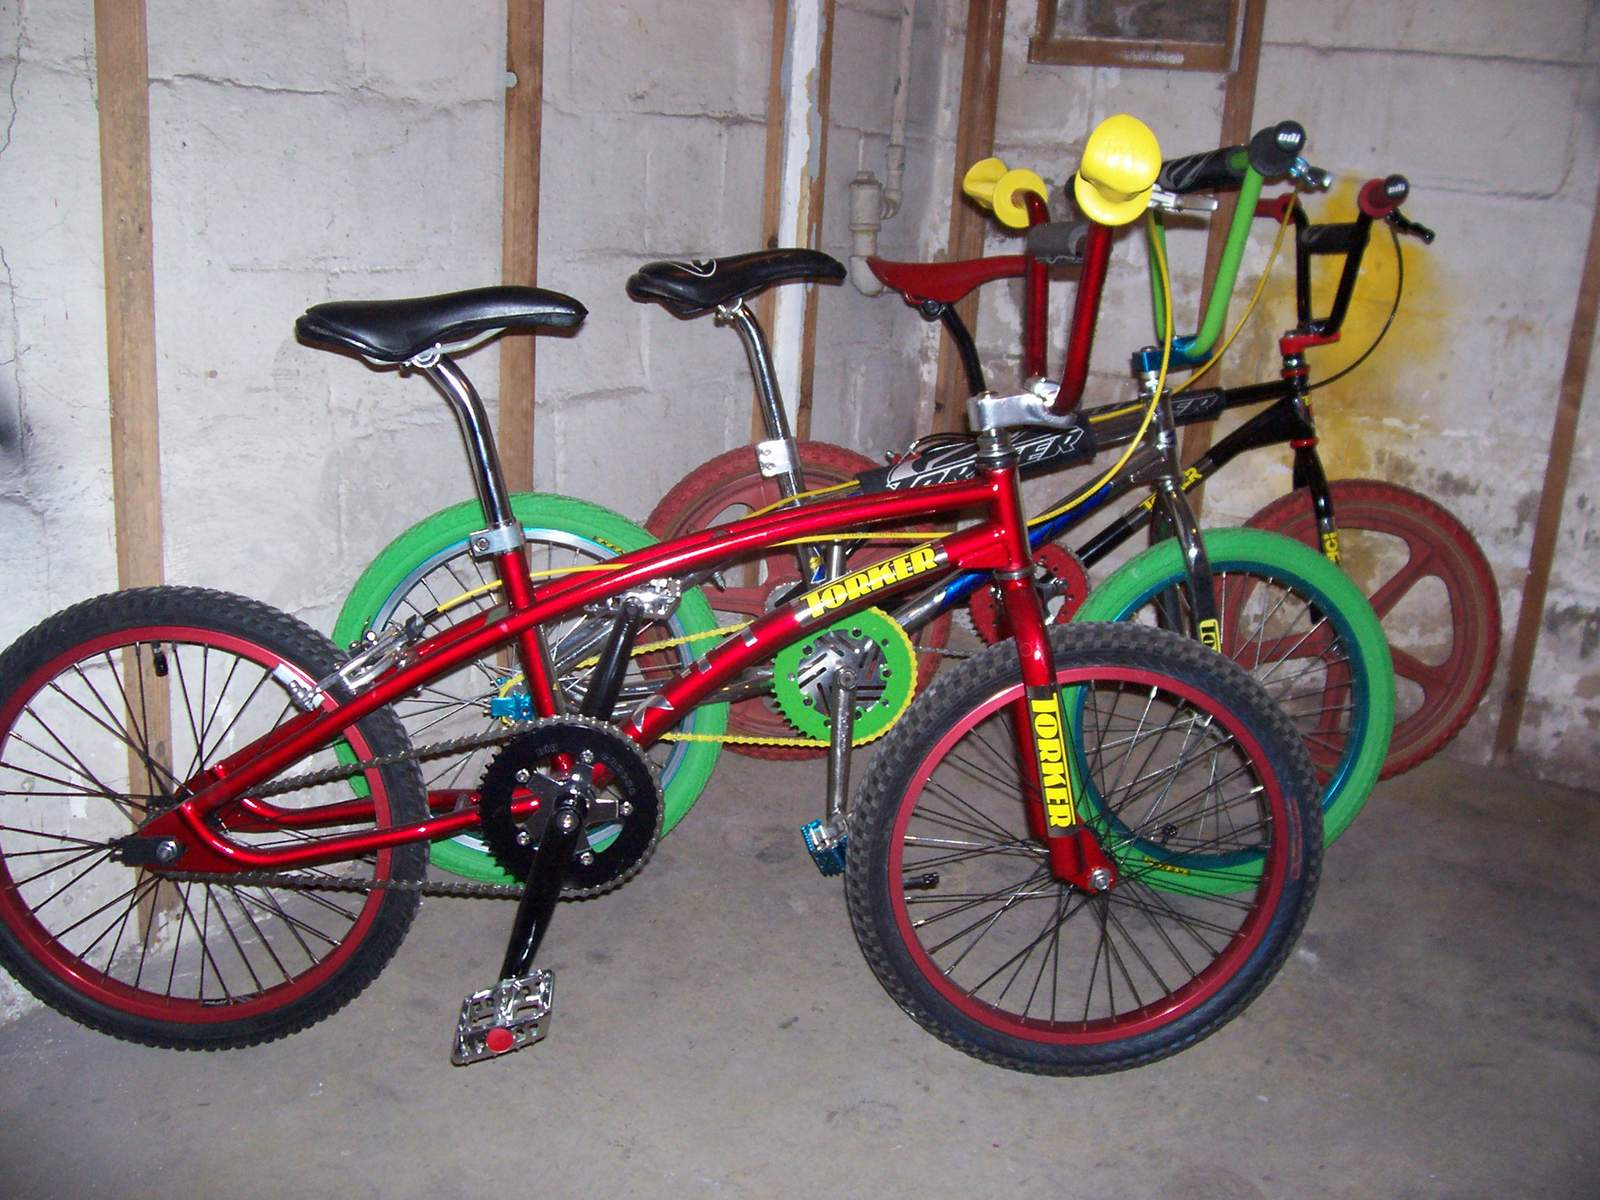 http://uploads.bmxmuseum.com/user-images/61851/100_800558d663636b.jpg